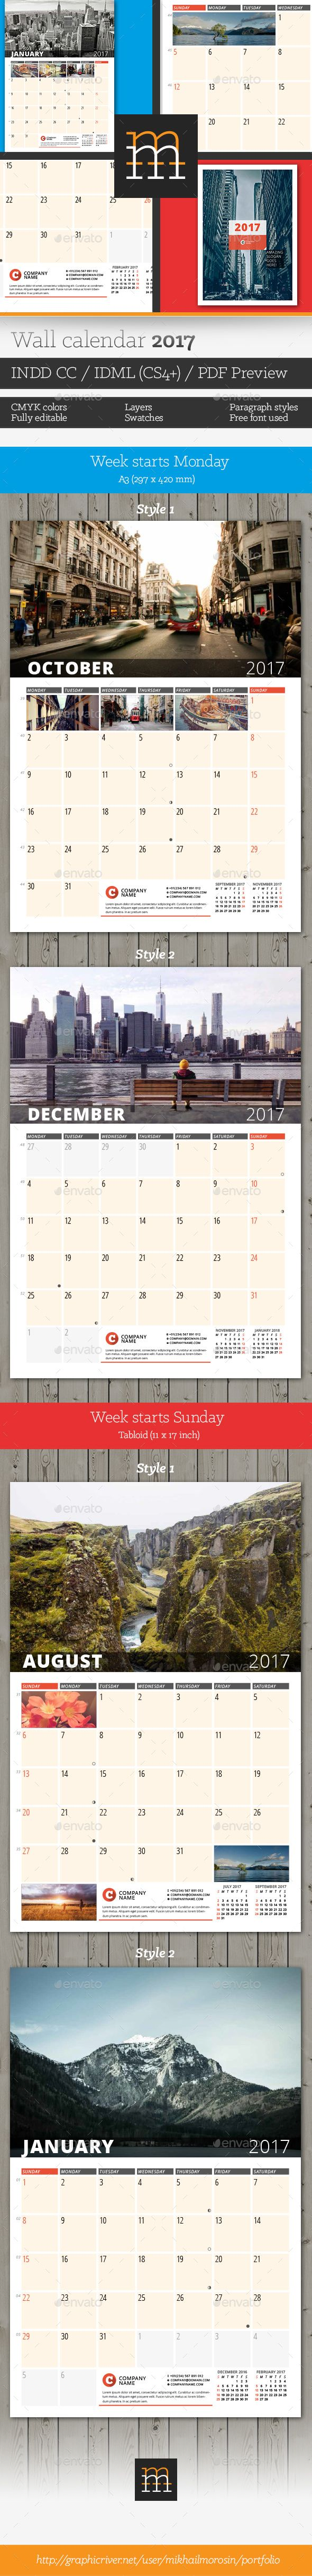 Wall Calendar 2017 Template InDesign INDD. Download here: https://graphicriver.net/item/wall-calendar-2017/16955397?ref=ksioks